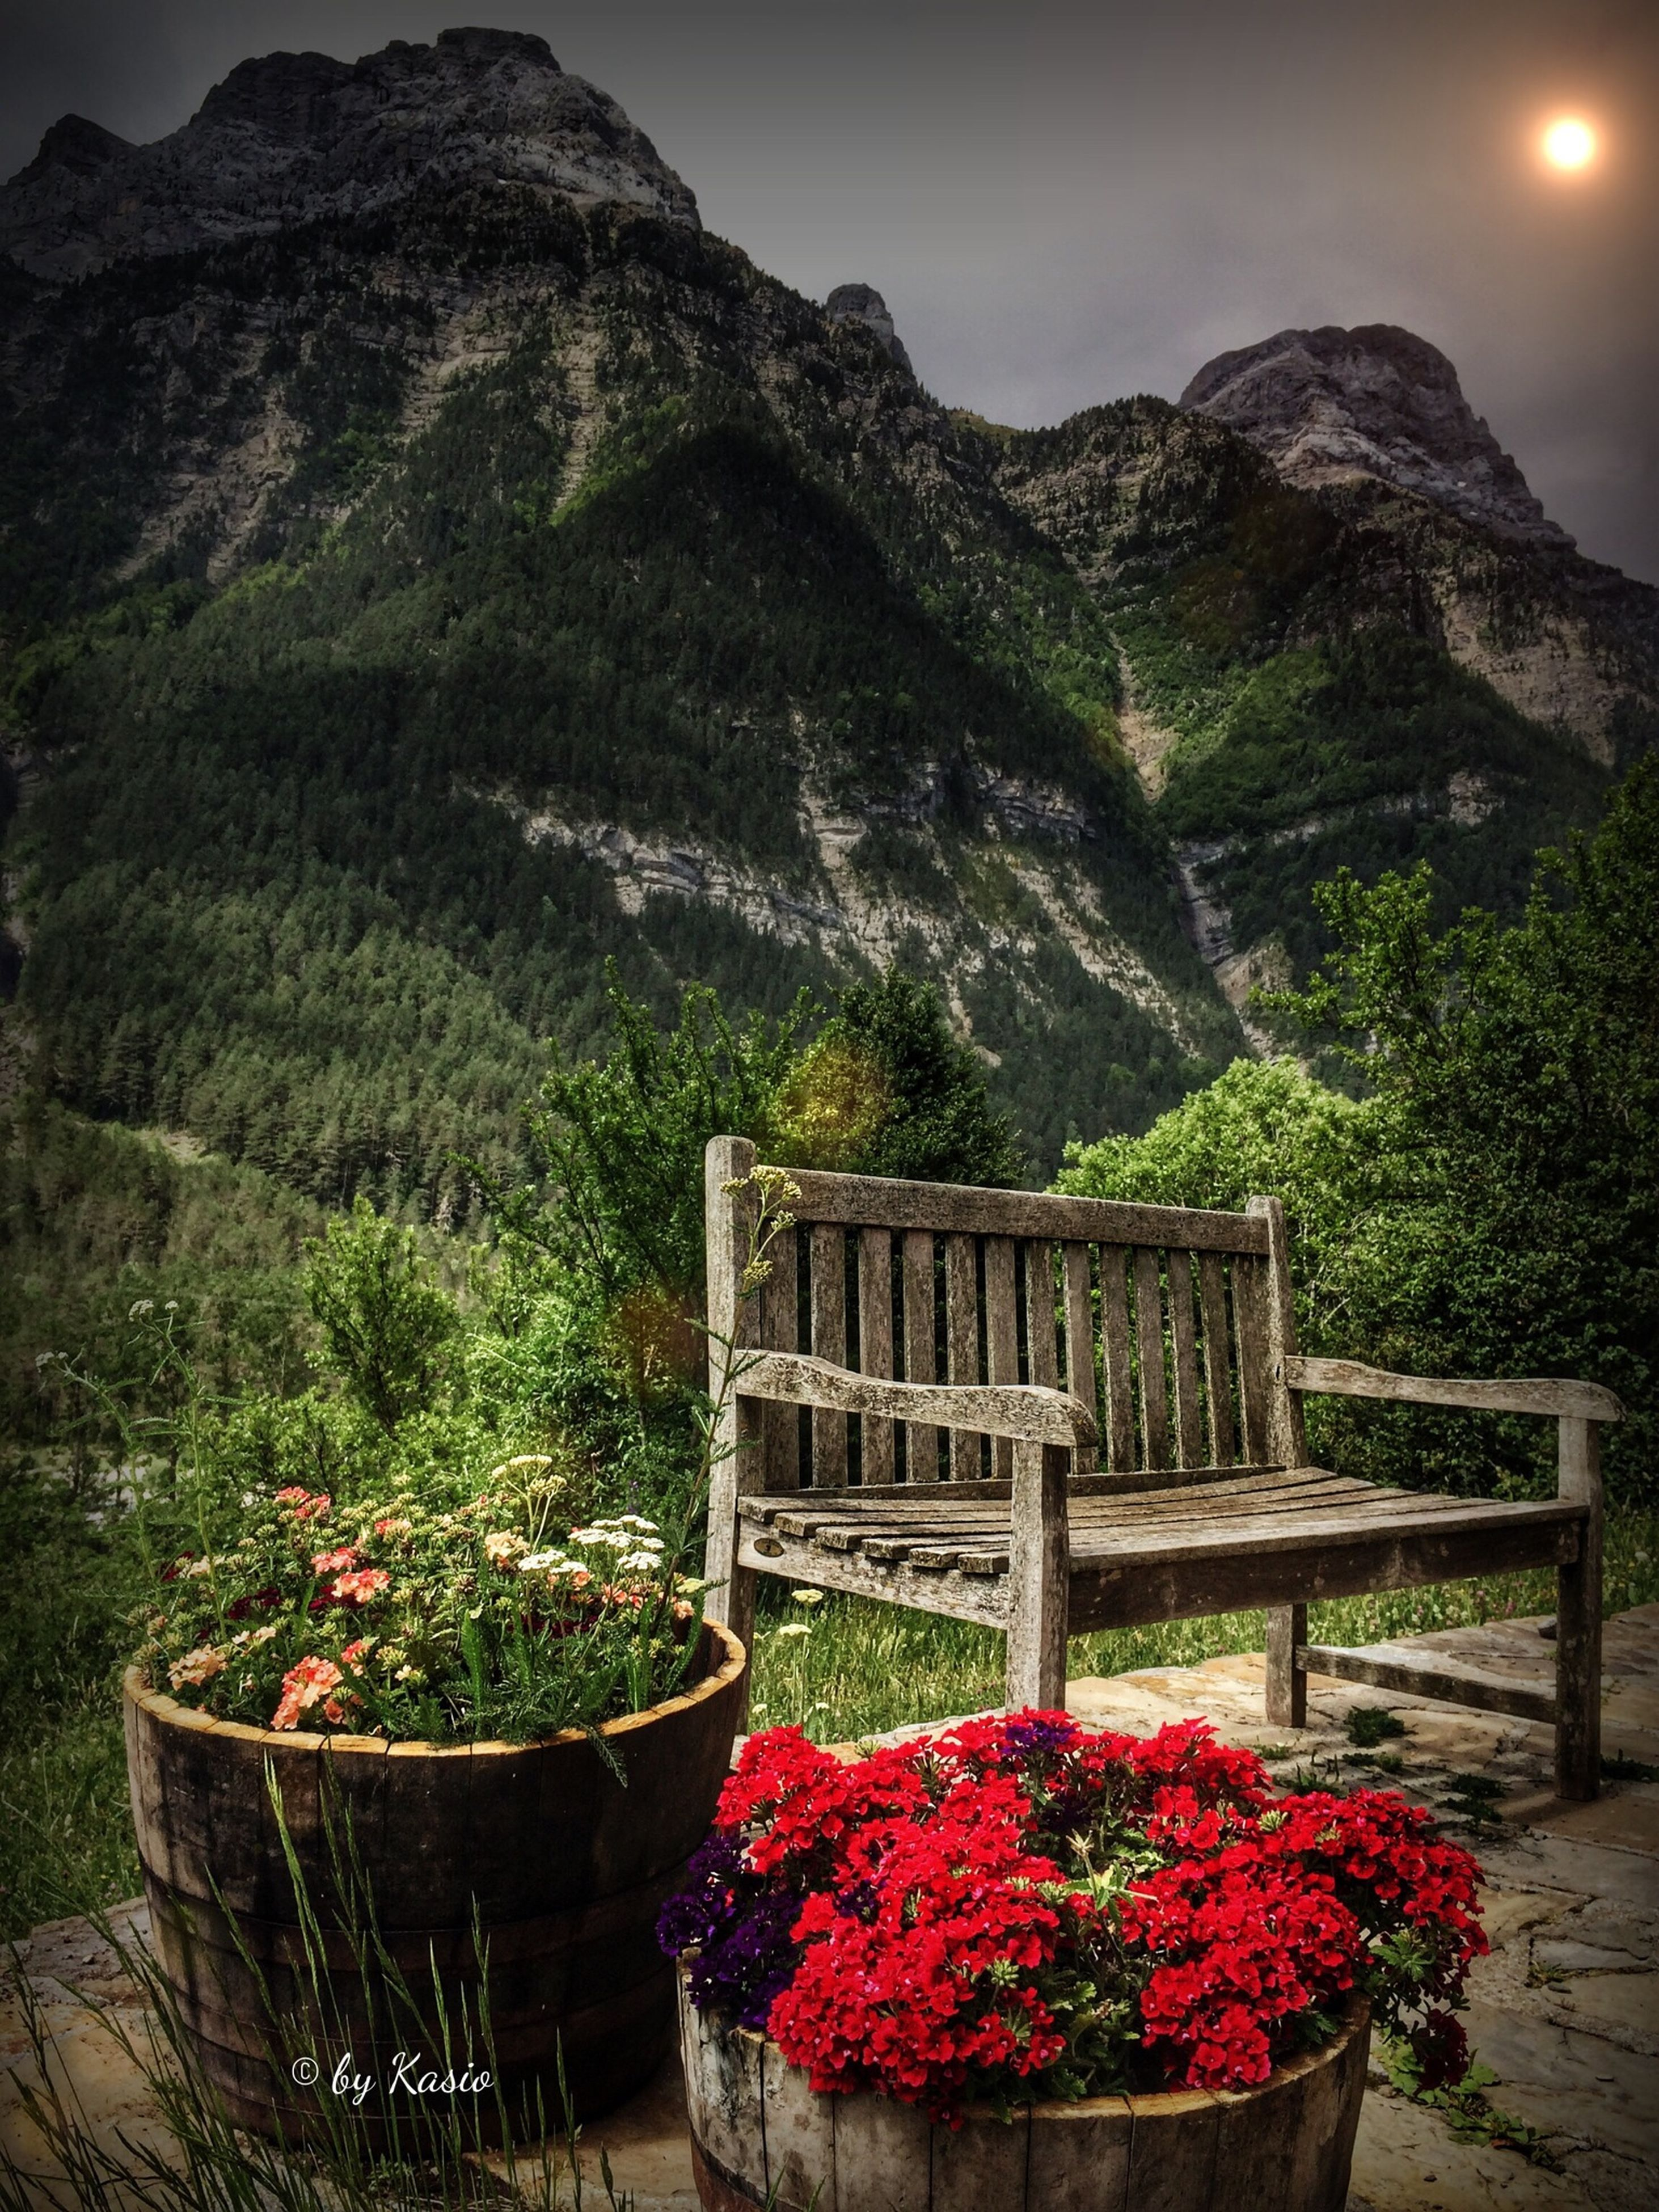 flower, mountain, plant, growth, freshness, beauty in nature, nature, fragility, mountain range, red, tranquil scene, tranquility, potted plant, scenics, tree, outdoors, day, blooming, in bloom, built structure